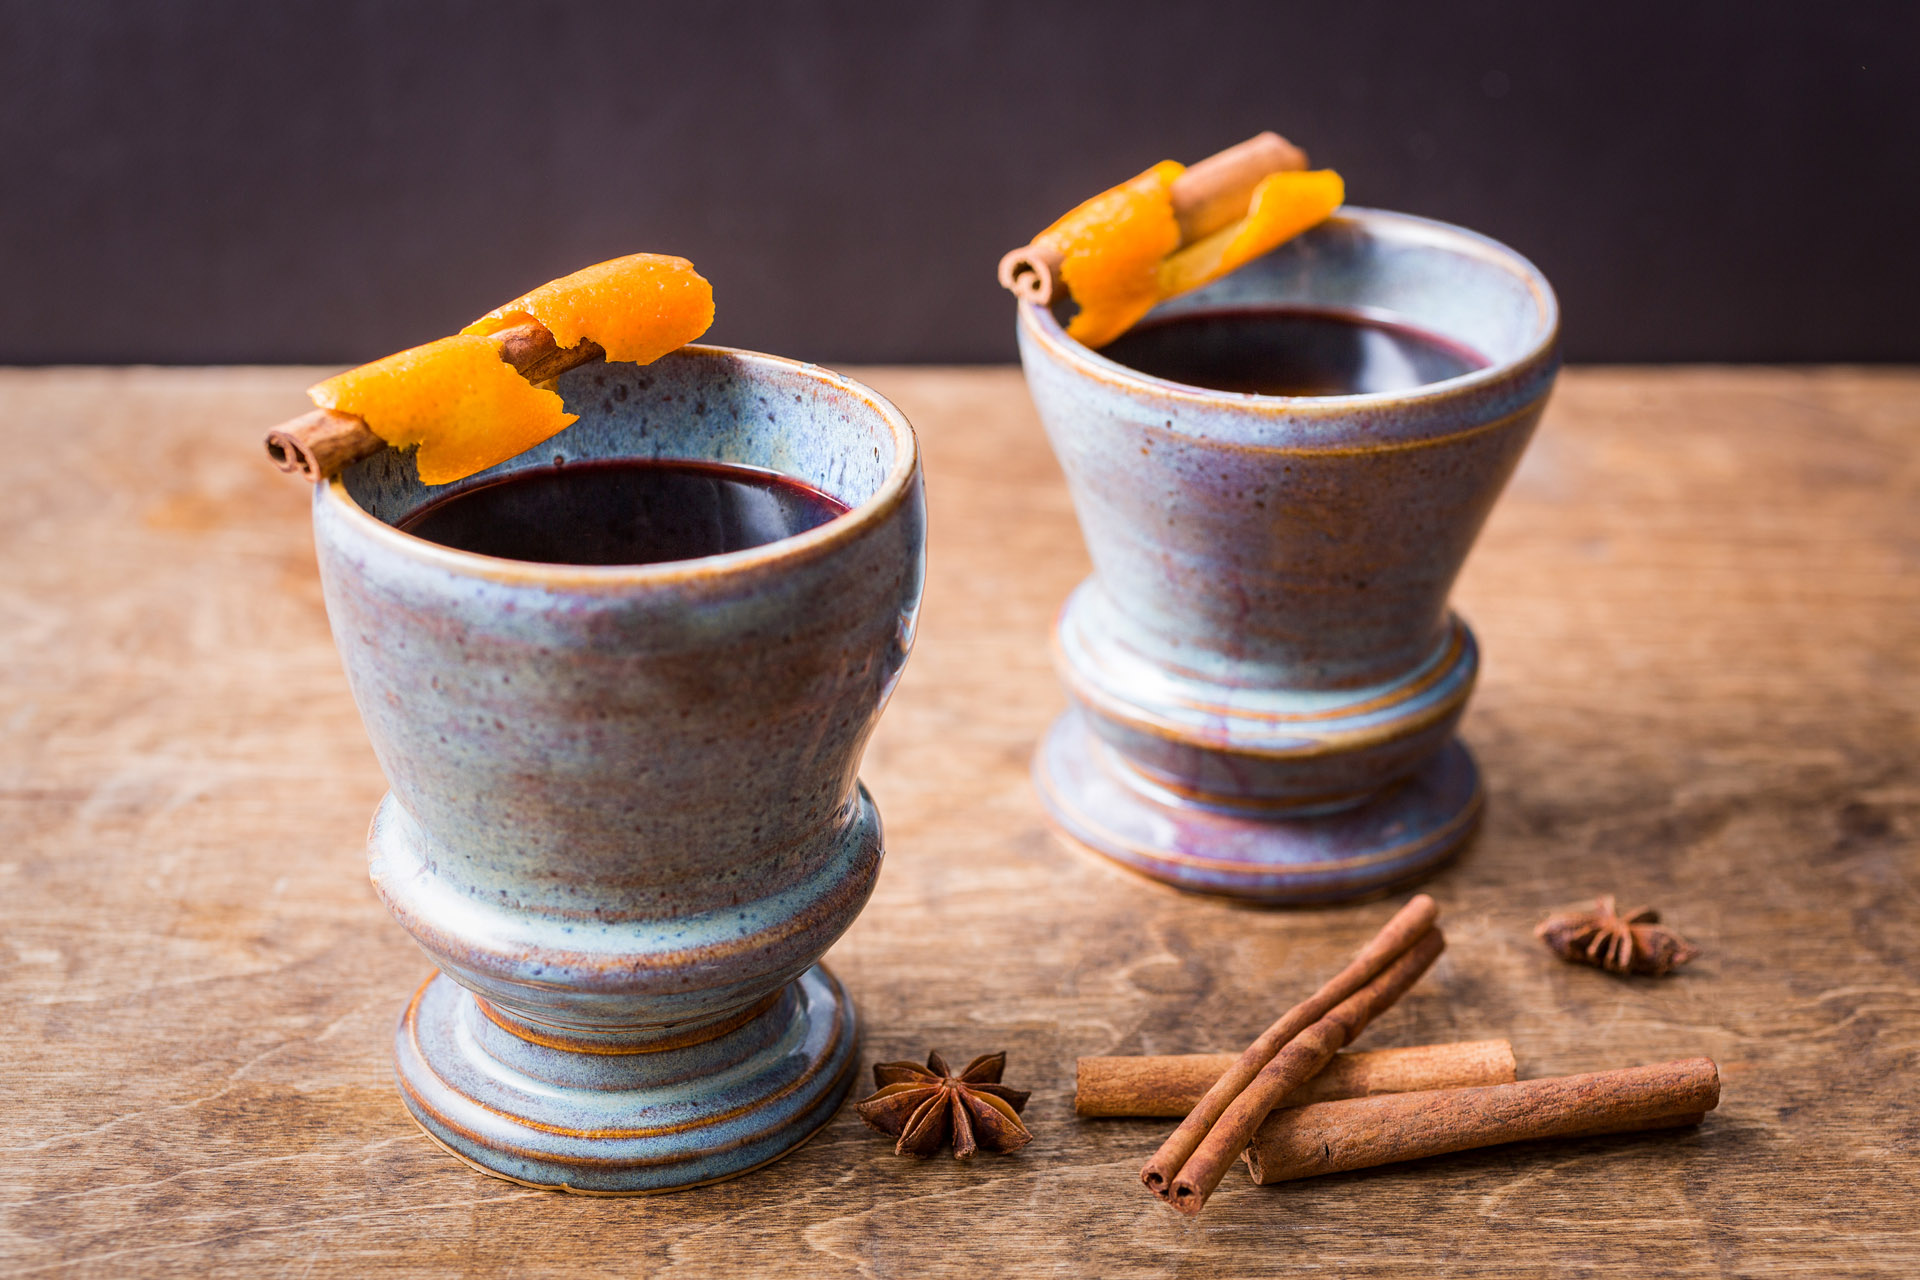 Two earthenware mugs filled with mulled wine and garnished with orange and cinnamon